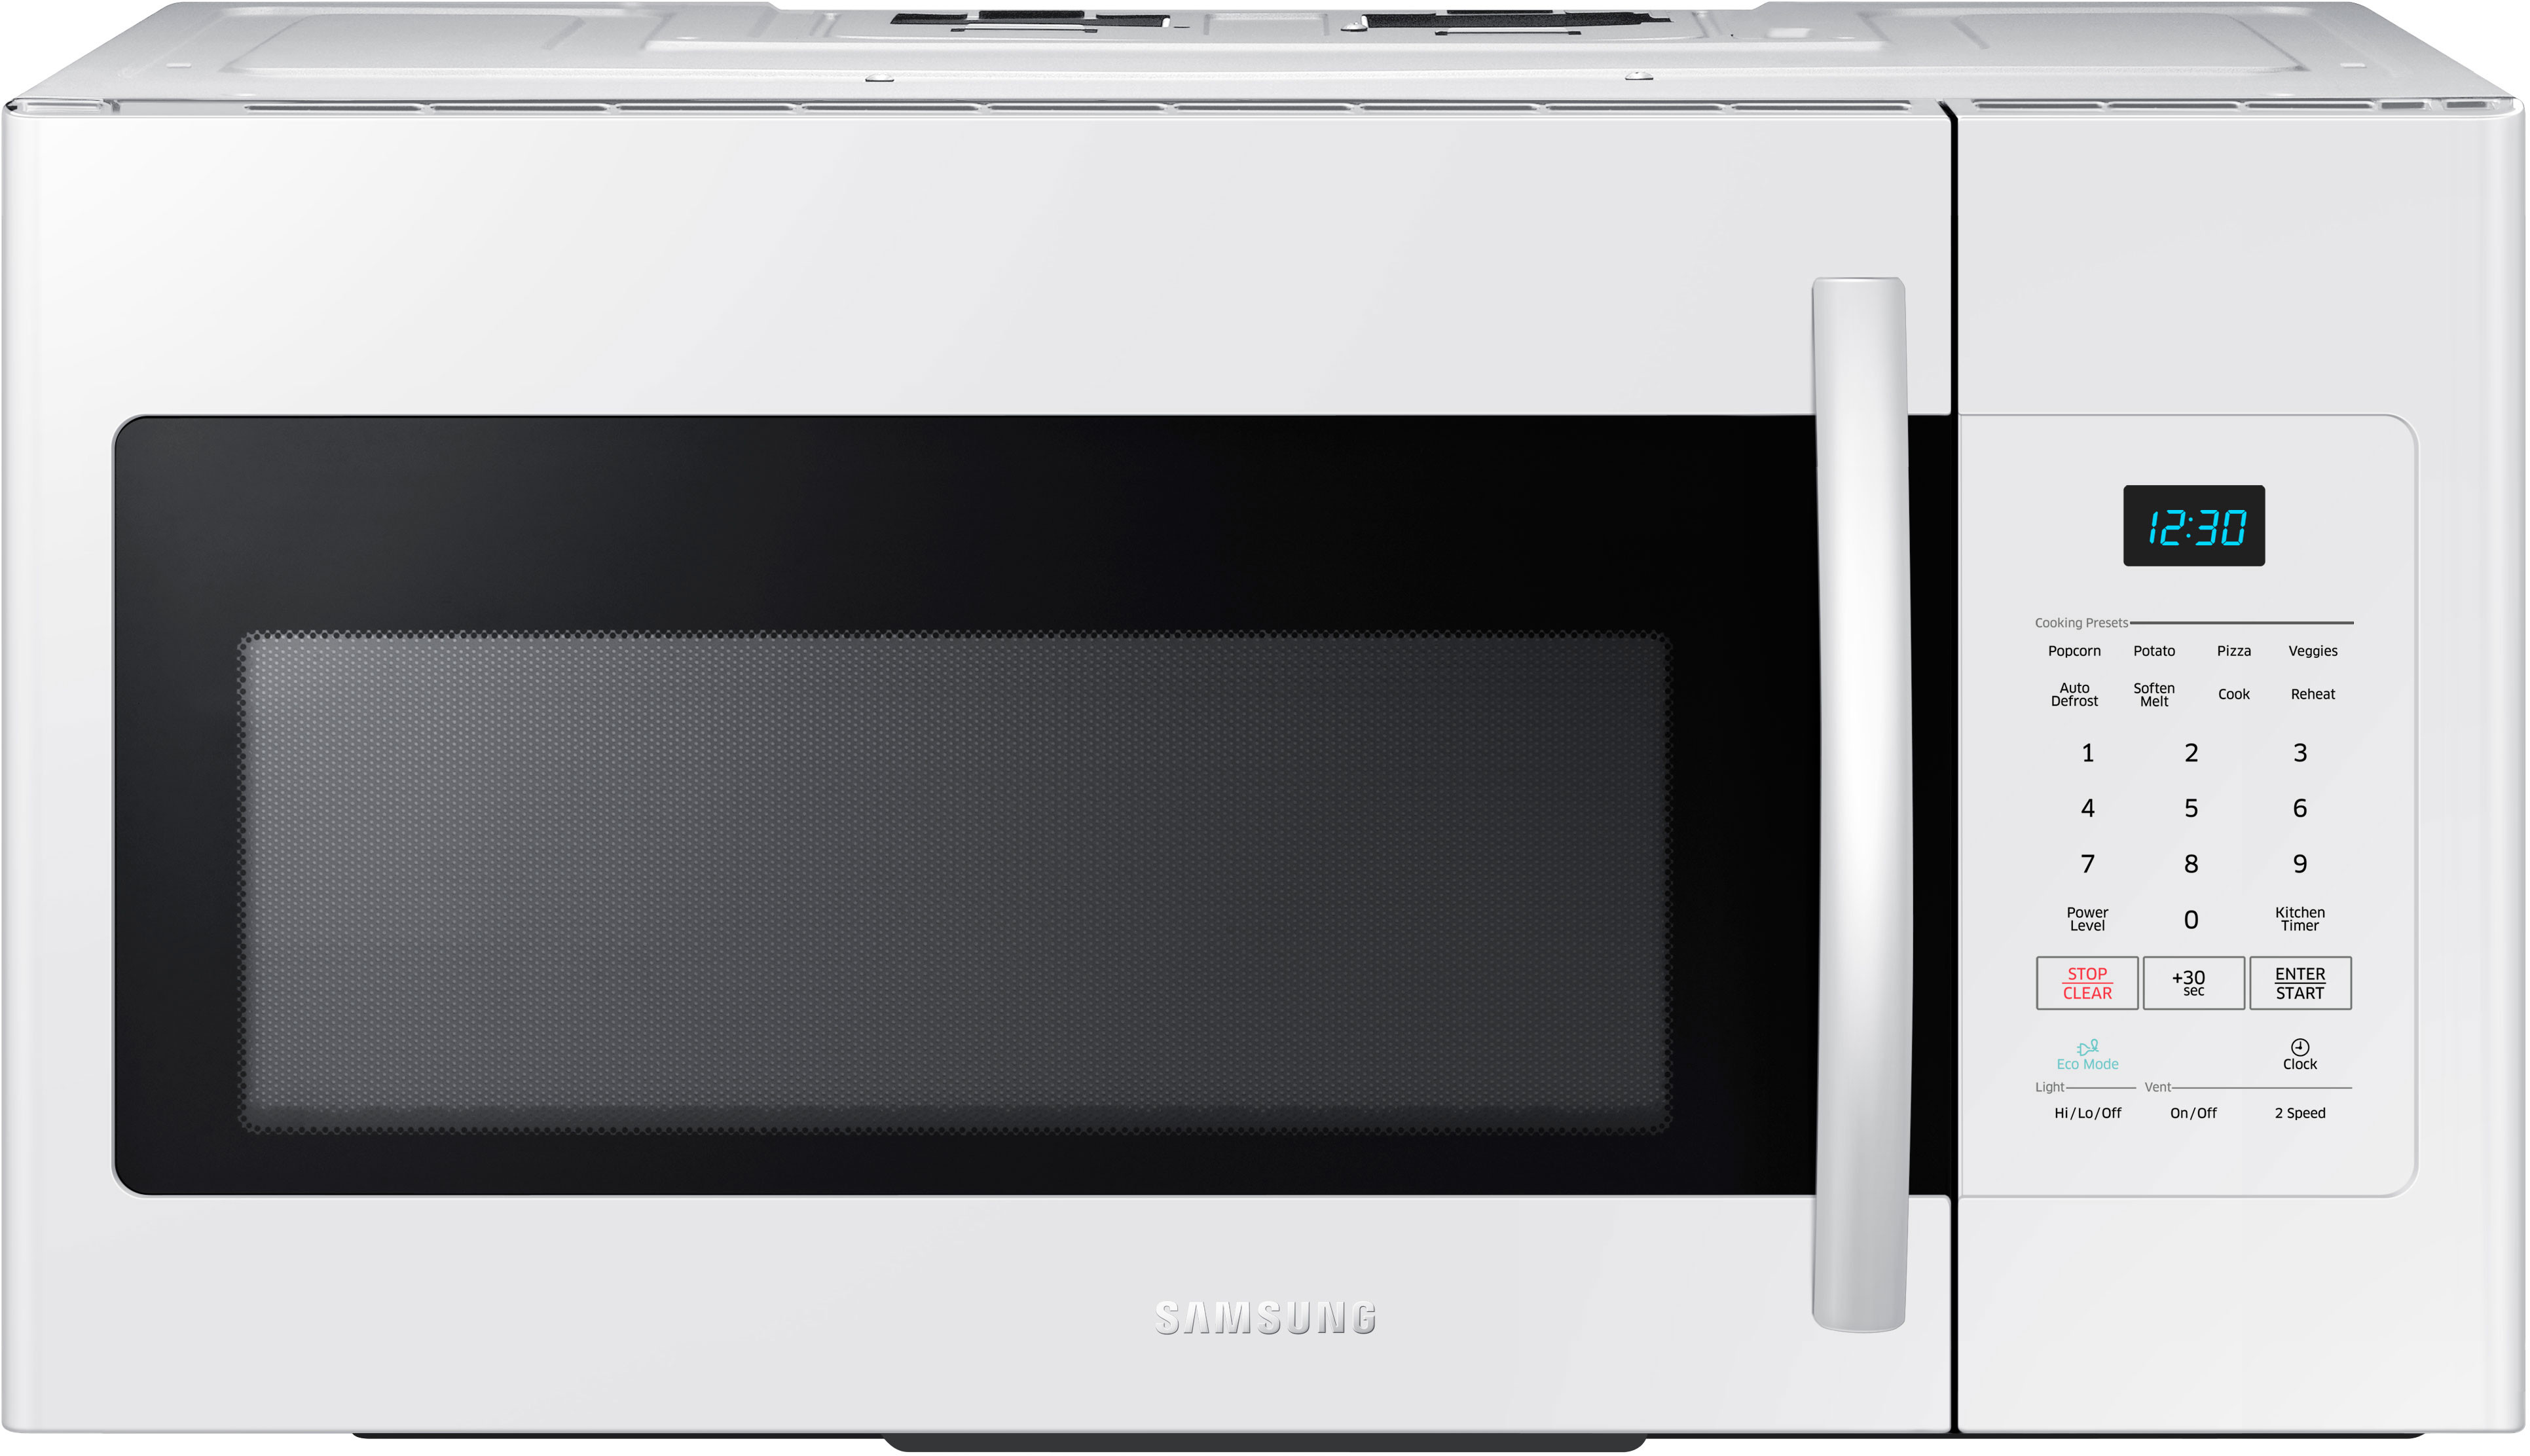 Samsung 1.6 cu. ft. Over-the-Range Microwave Oven on